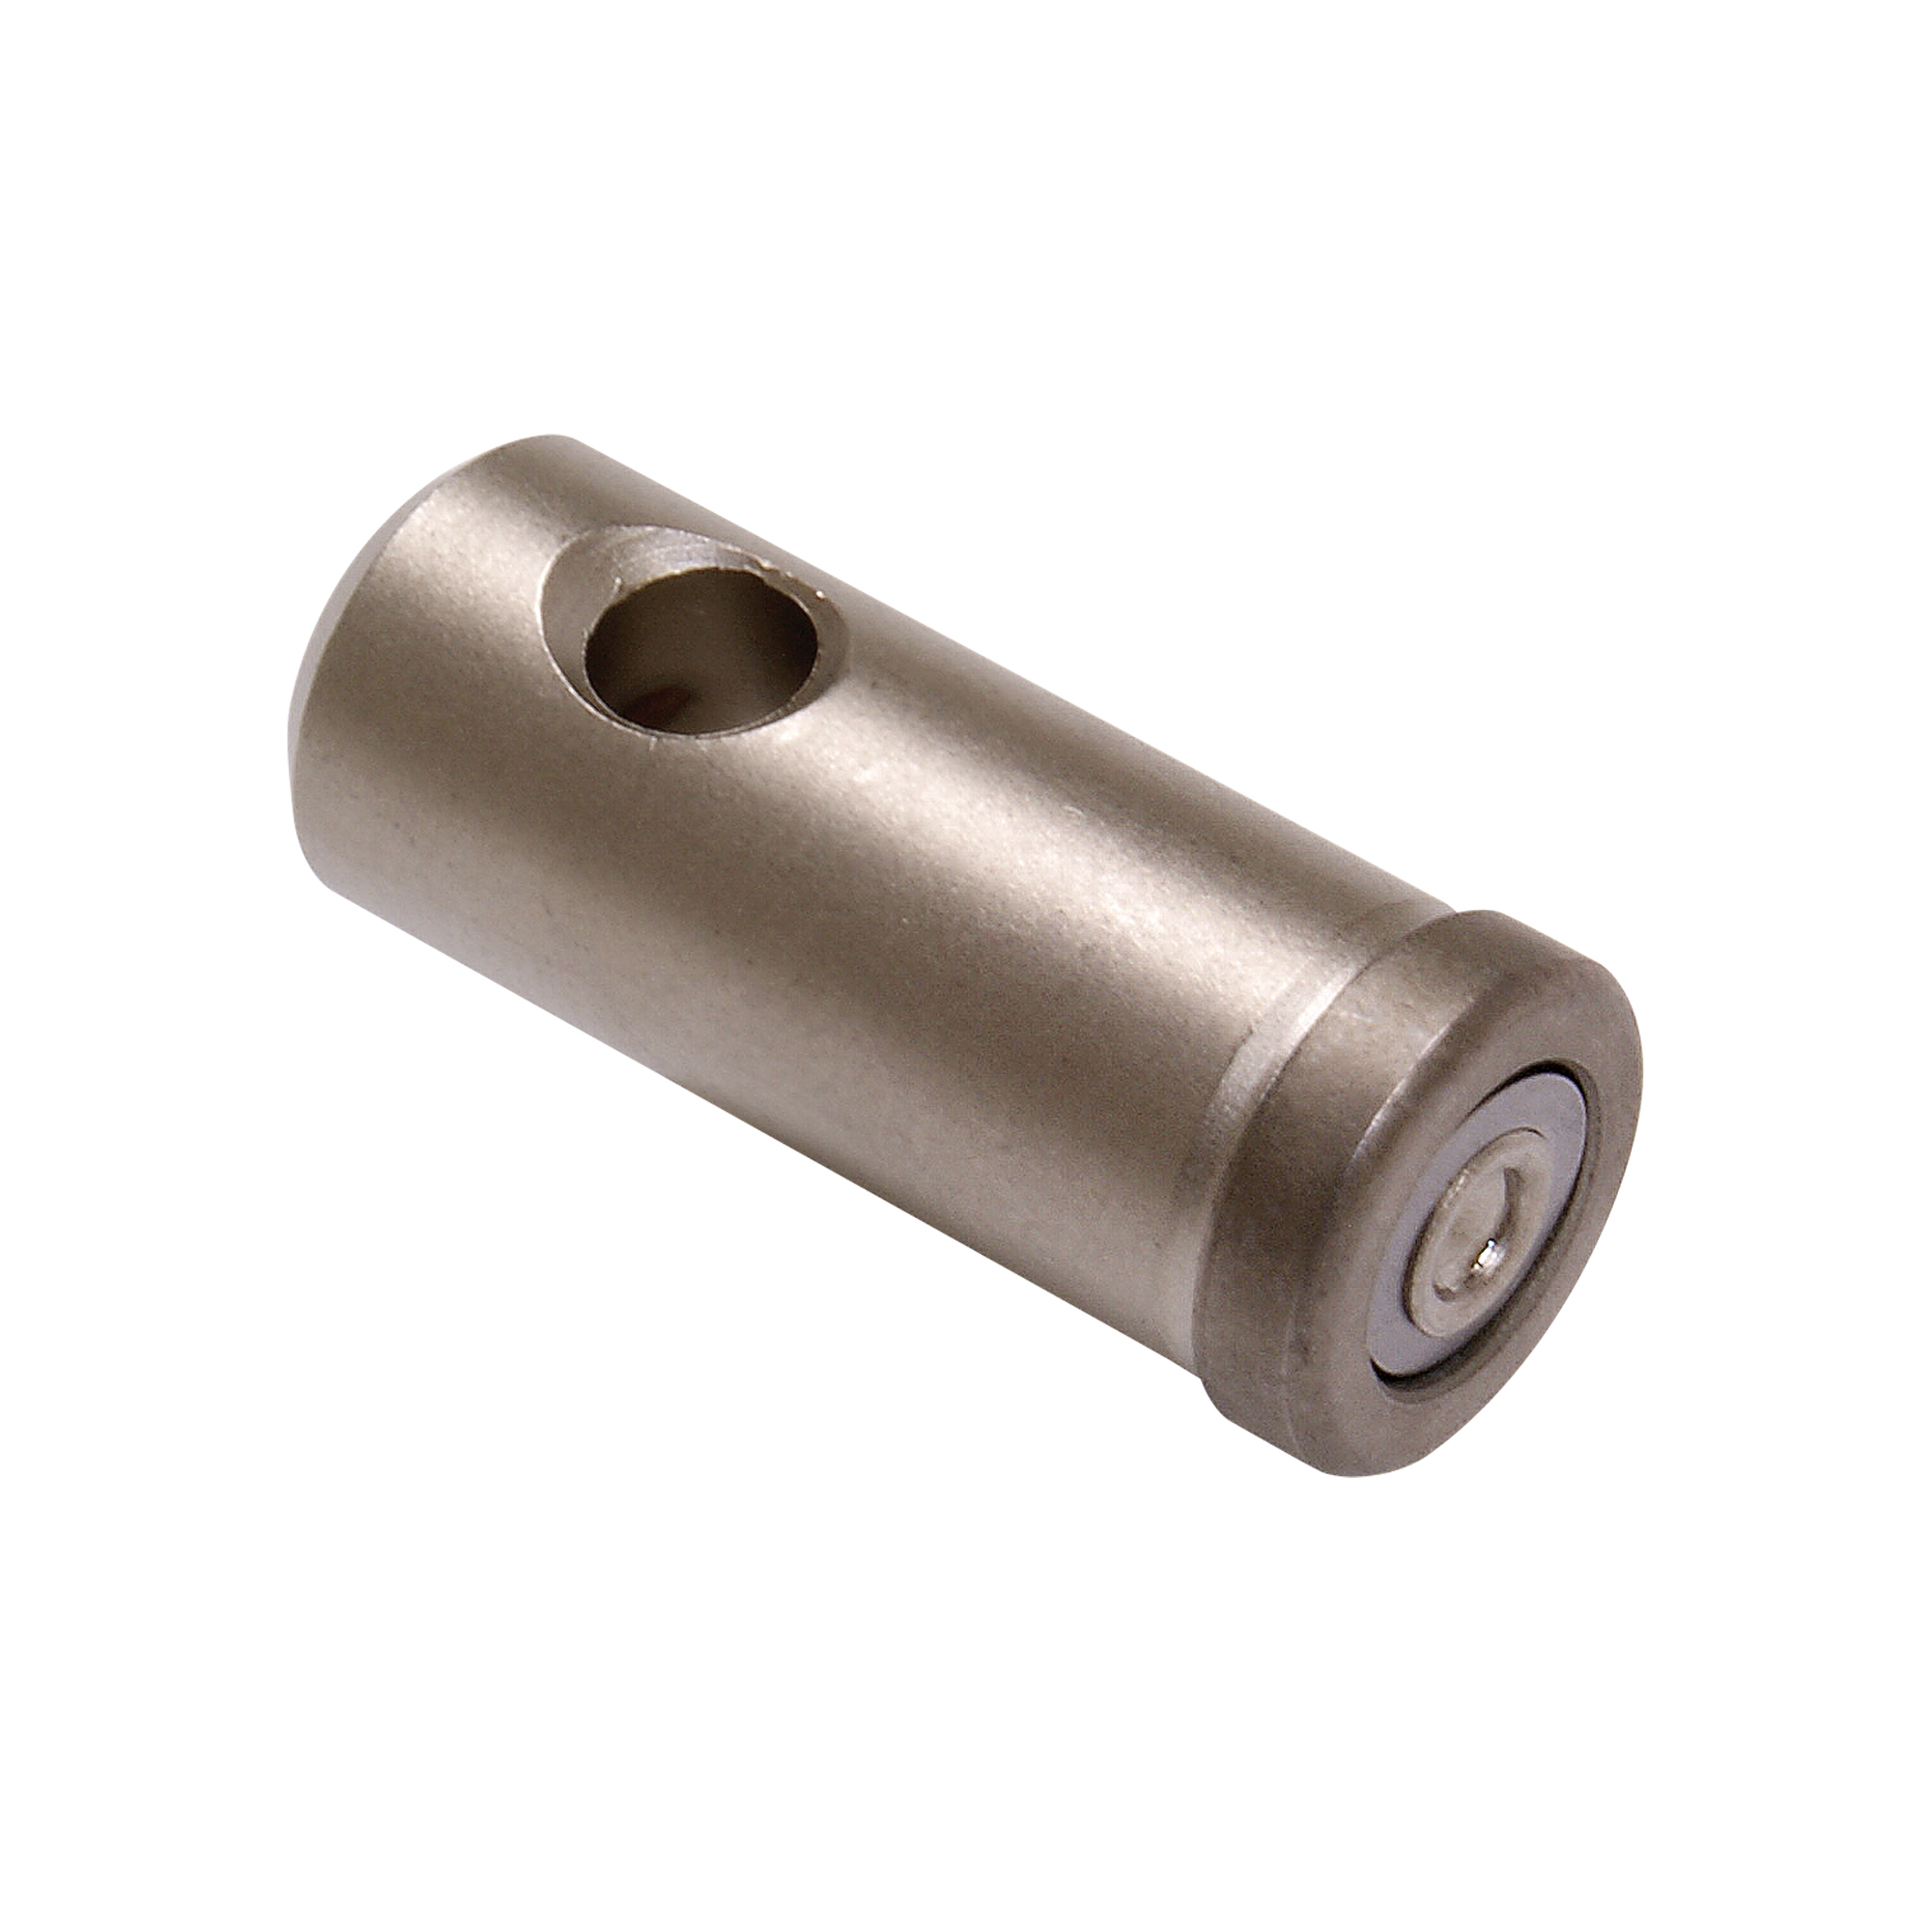 NP3 coated Roller Cam Pin for POF P308 (7.62 model).